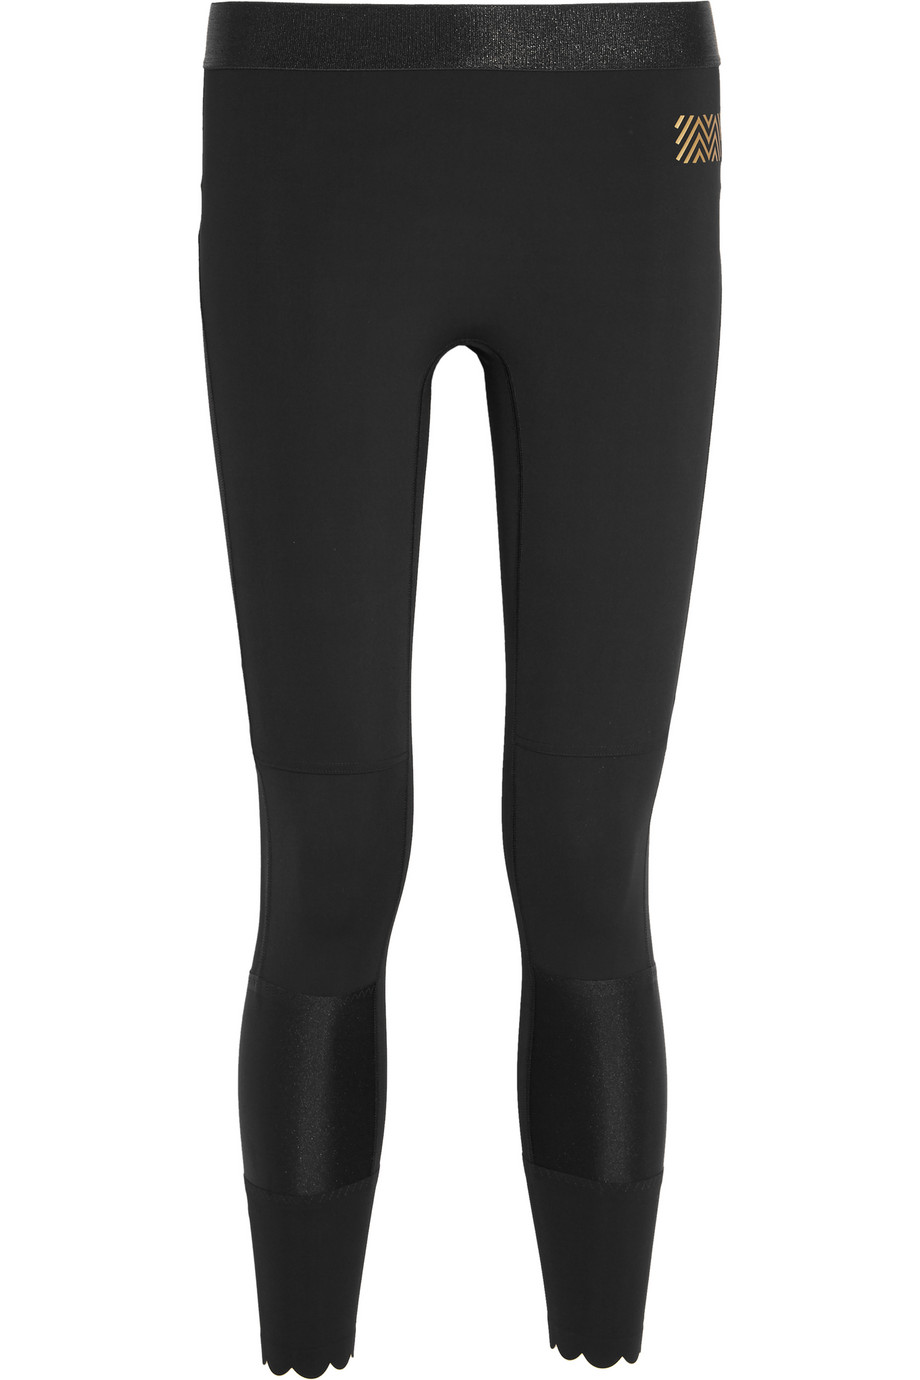 Monreal London Spectrum Stretch-Jersey Leggings, Black, Women's, Size: XS